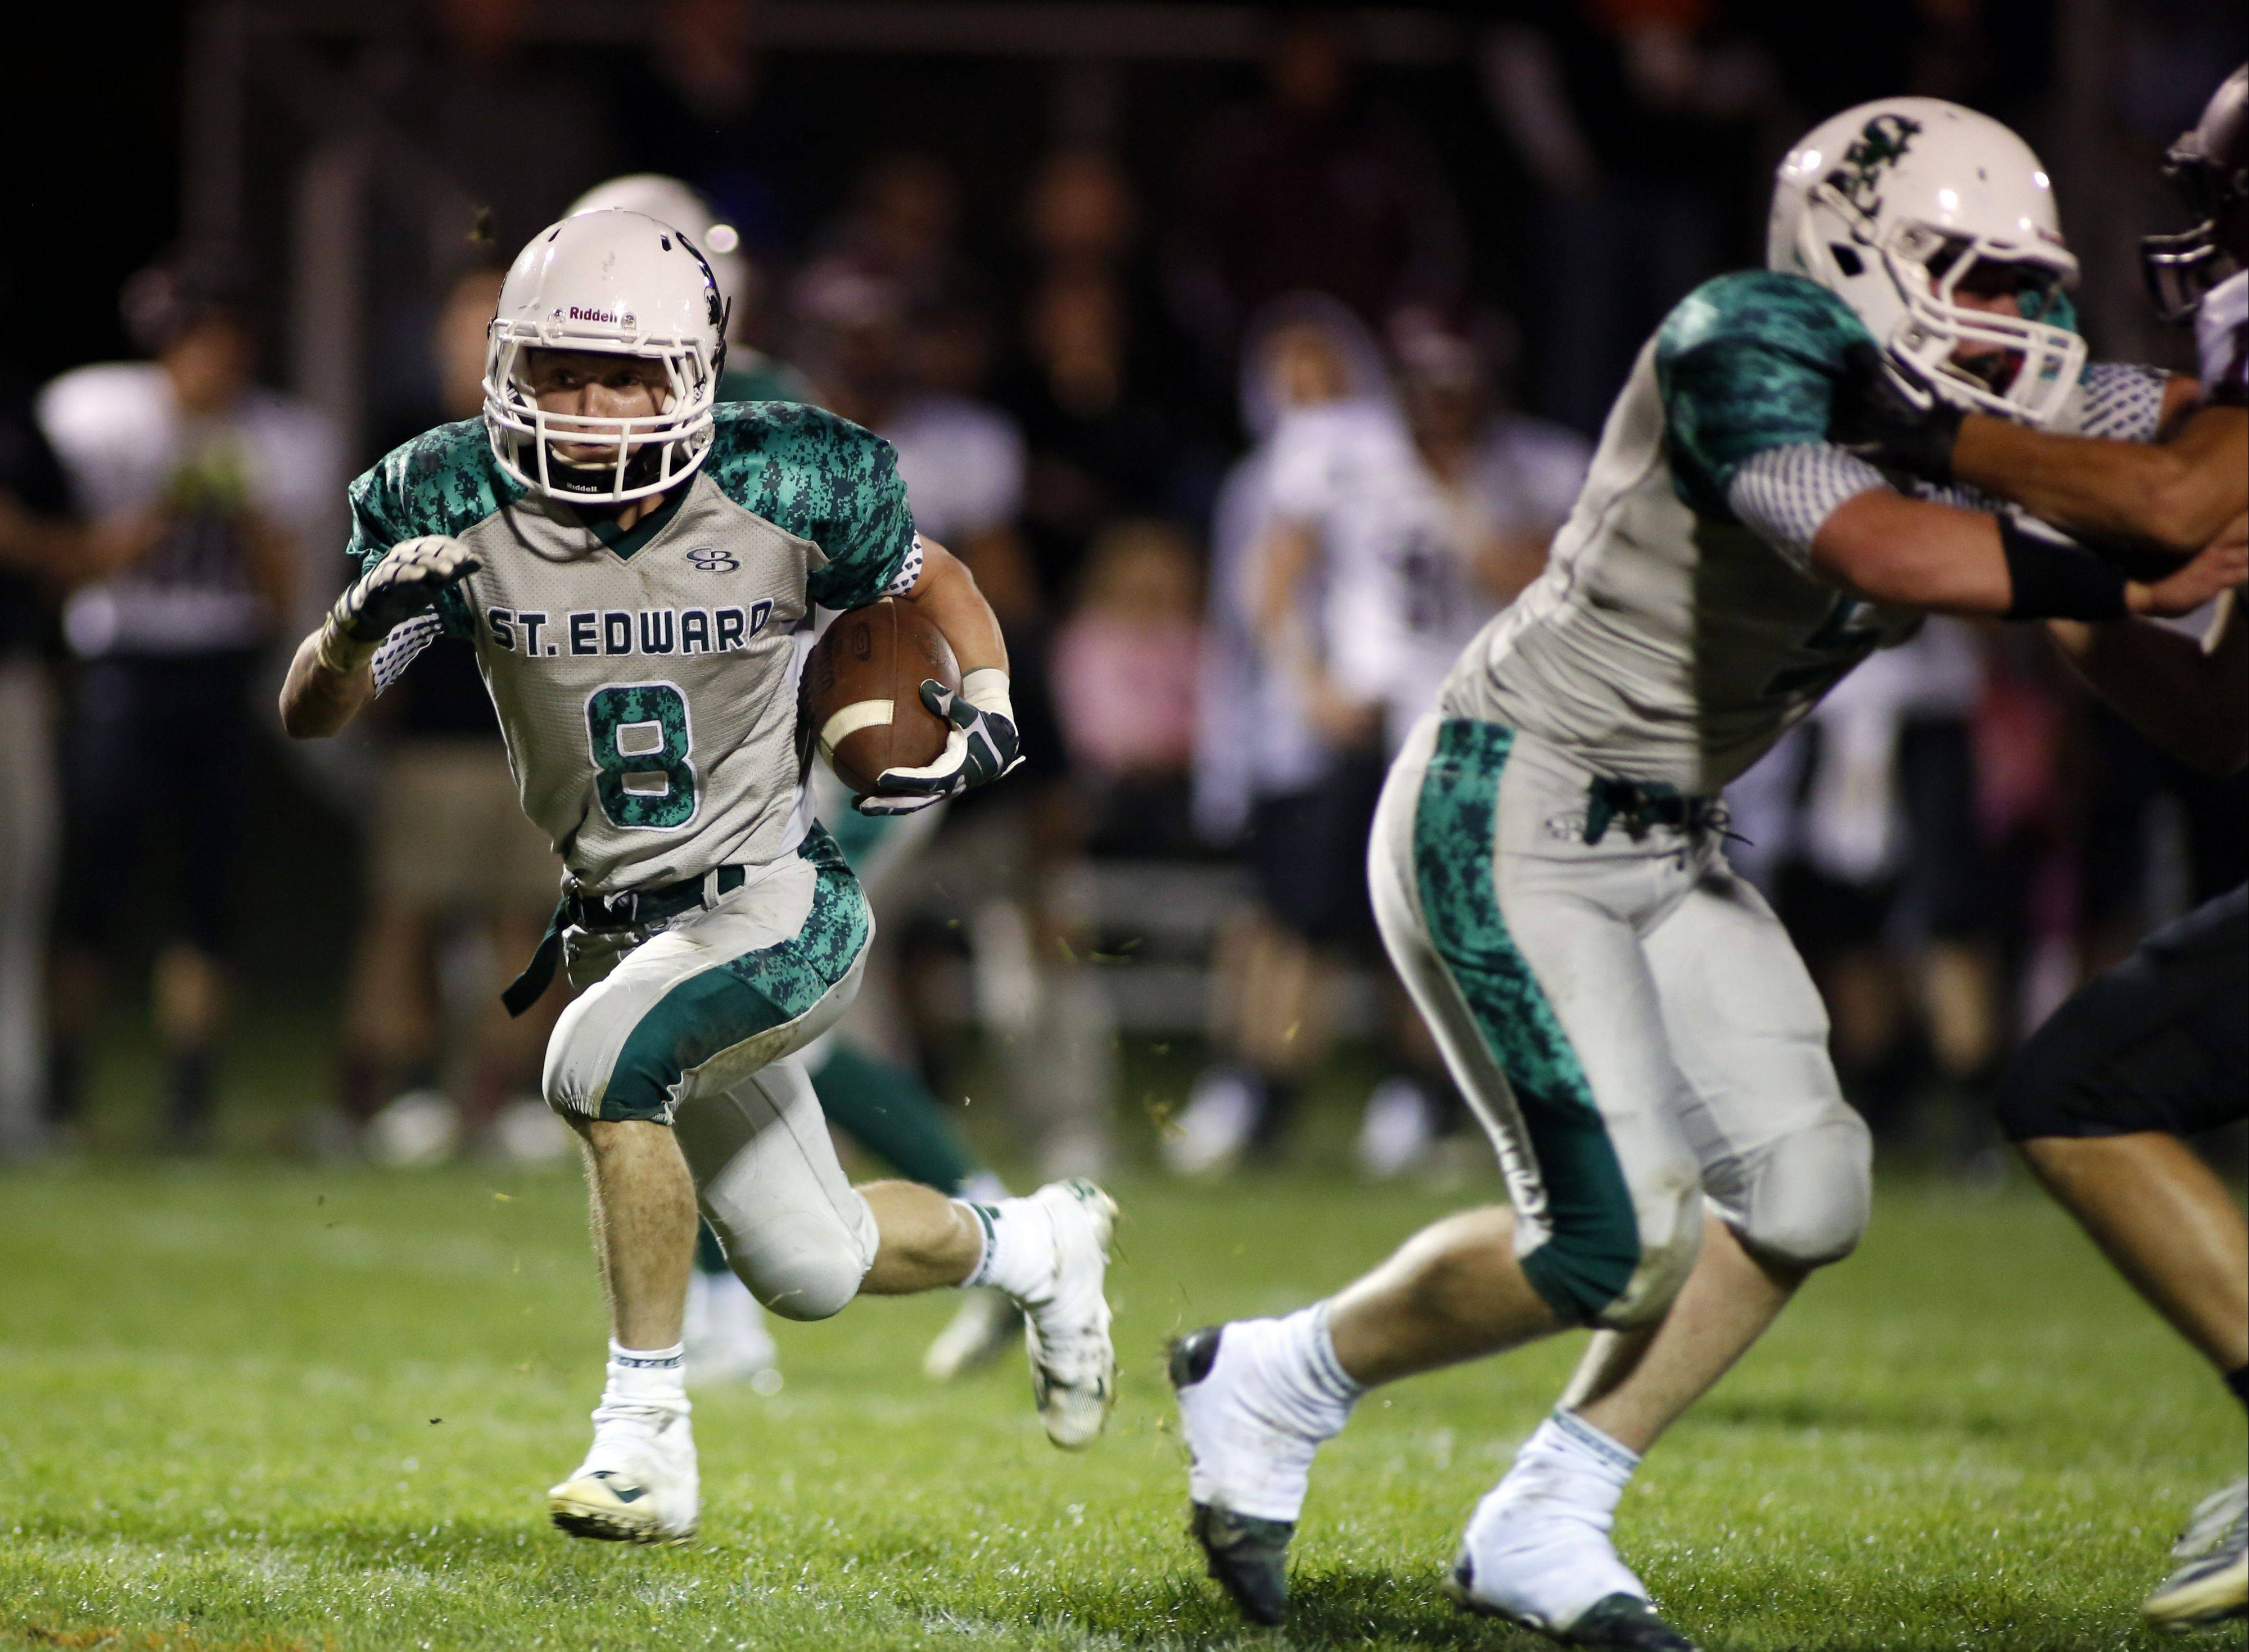 St. Edward�s Michael Castoro rumbles in for a touchdown during the Green Wave�s victory over Wheaton Academy on Friday at Greg True Field in Elgin.